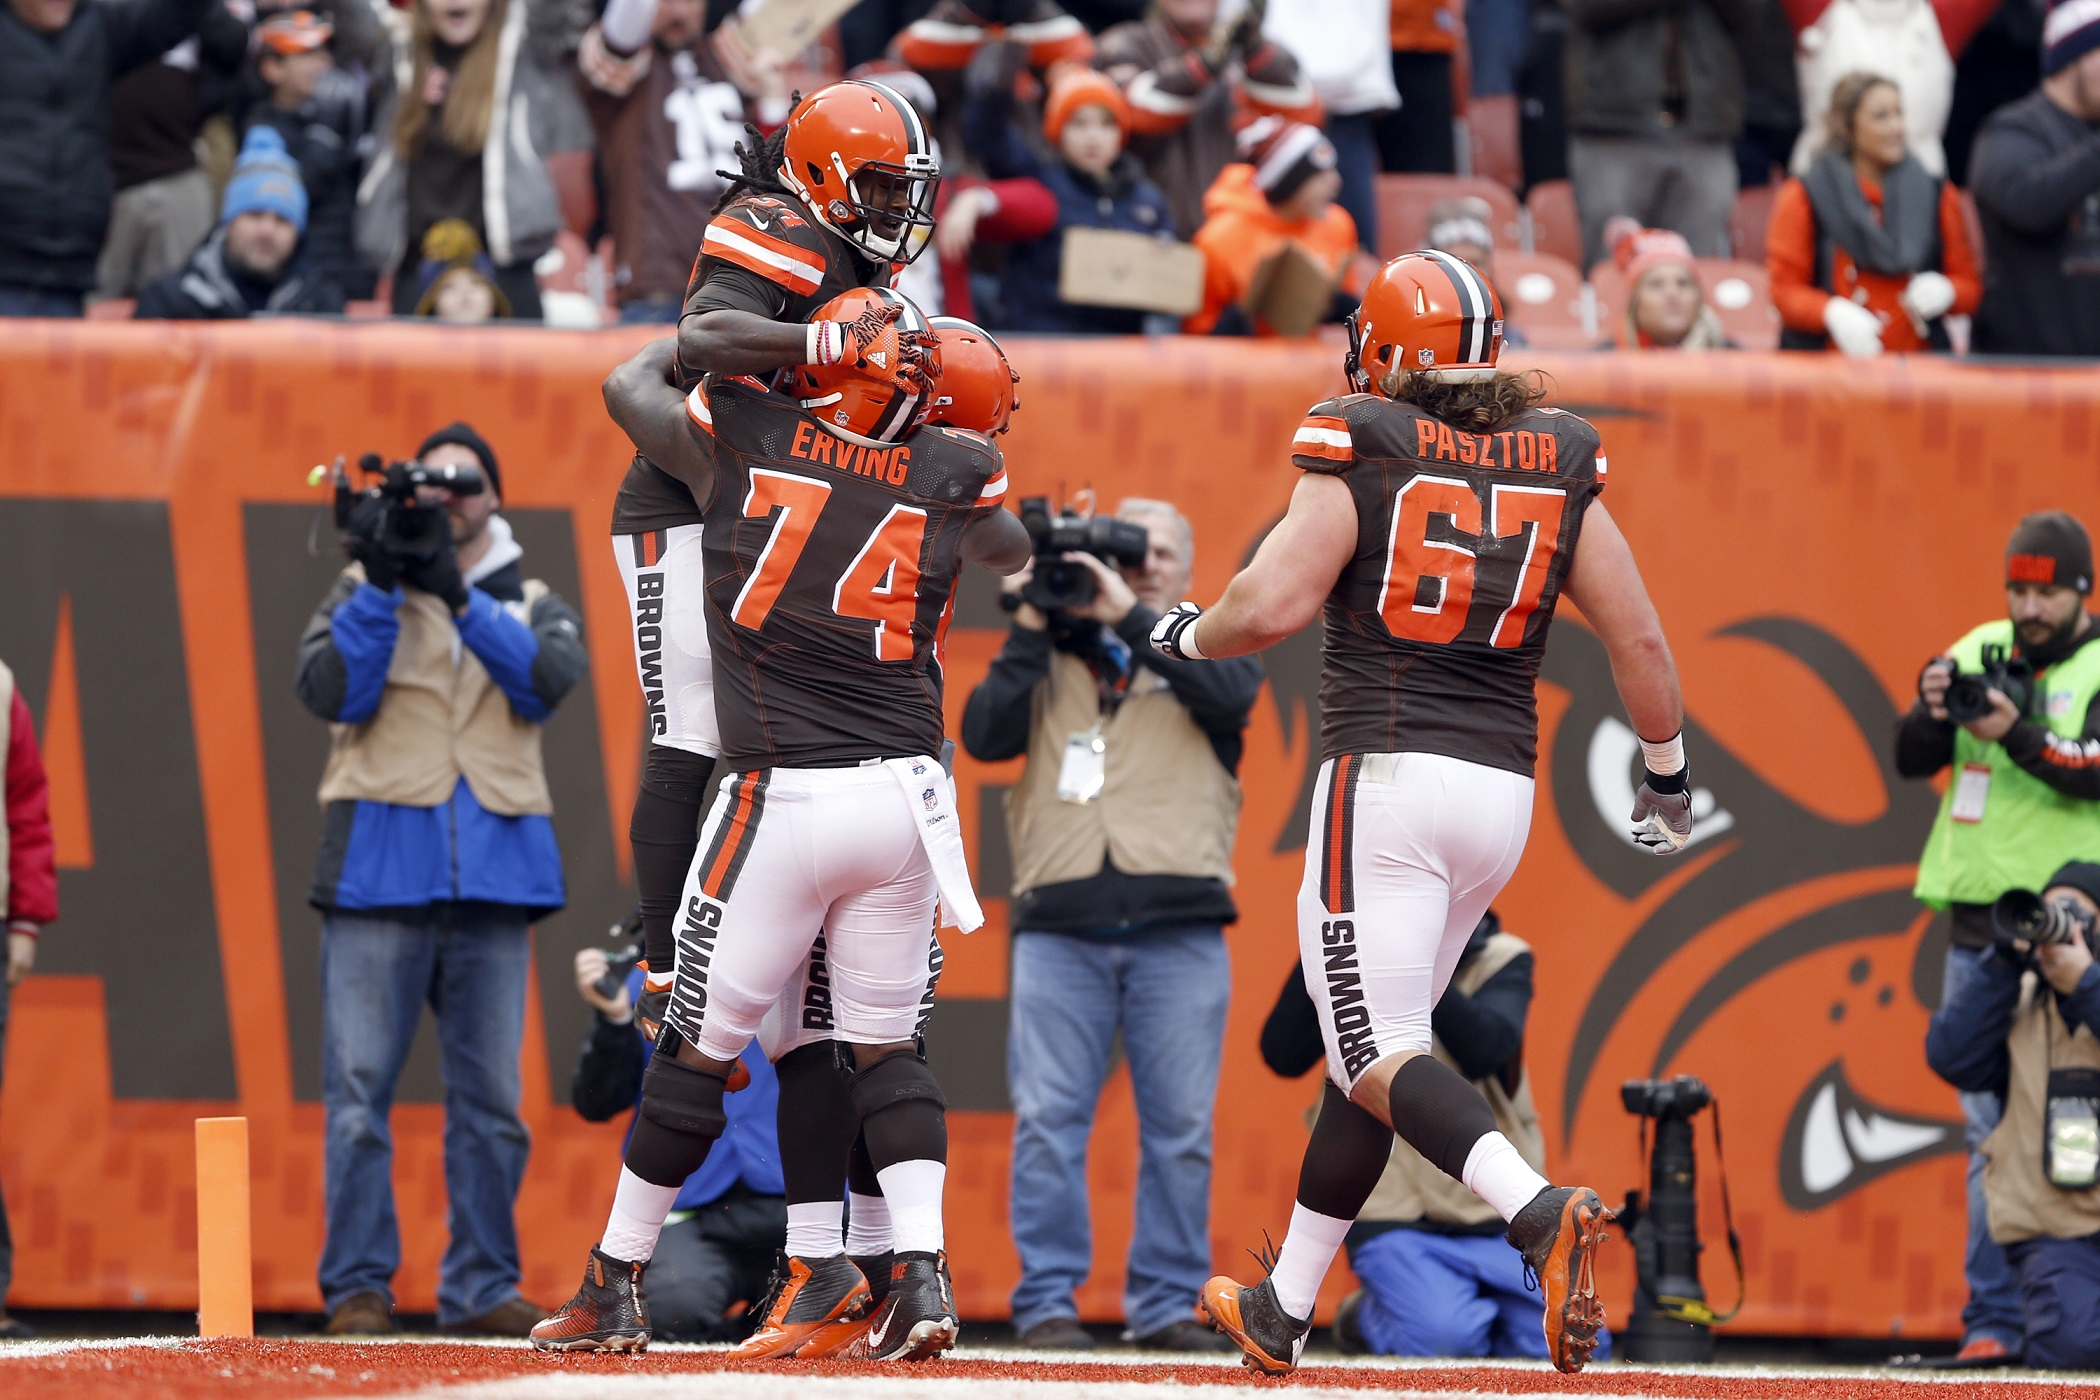 Browns 'Aggressively' Trying To Trade CB Joe Haden